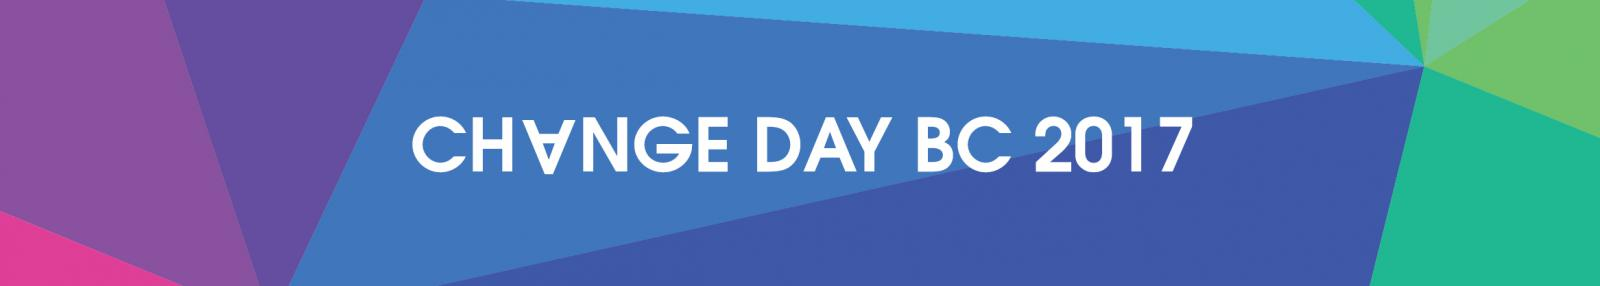 Change Day BC is coming